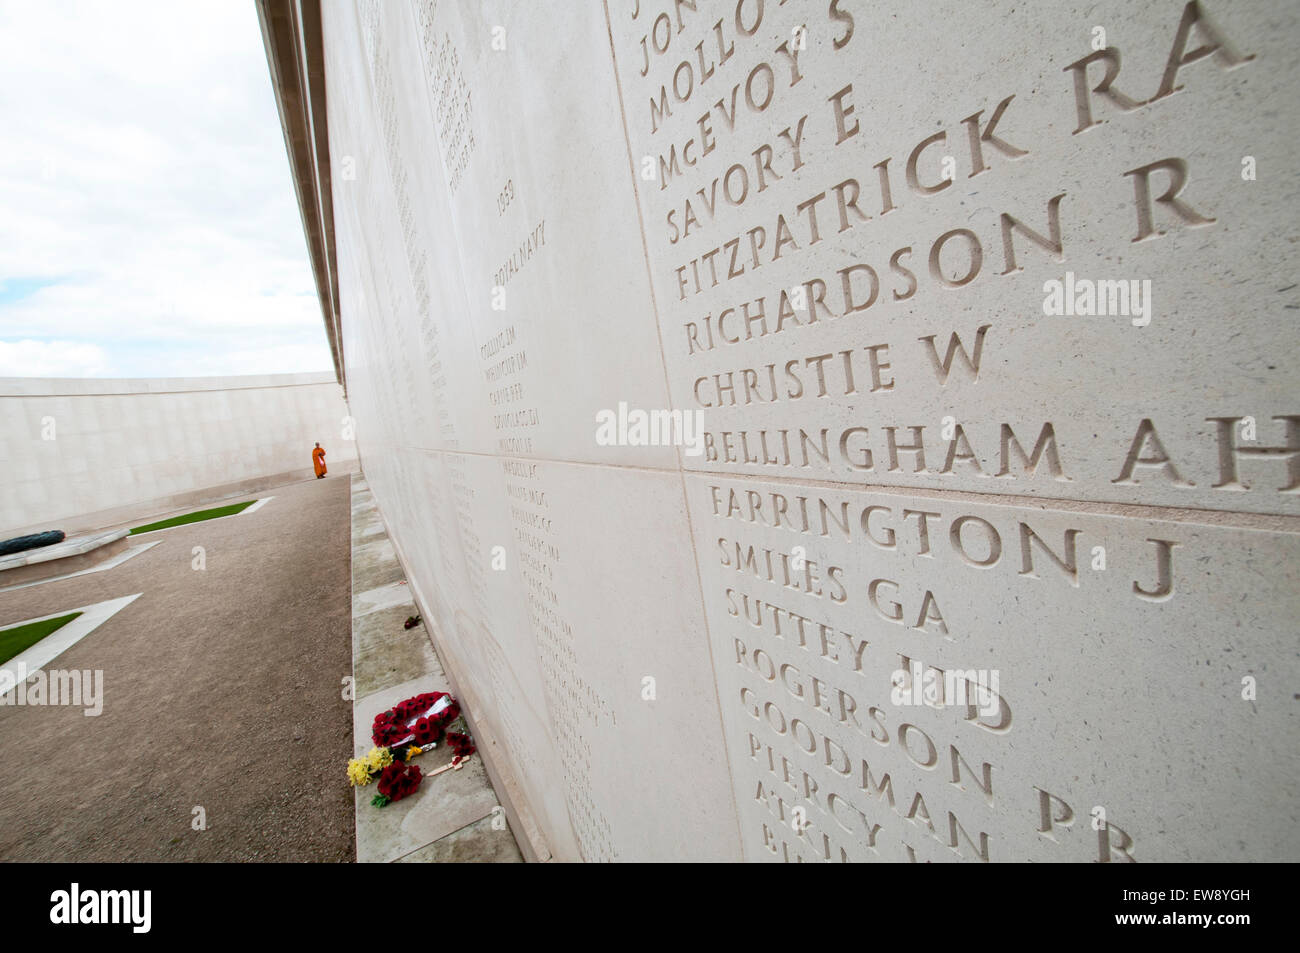 Armed Forces Memorial at The National Memorial Arobretum, near Lichfield in Staffordshire England UK - Stock Image